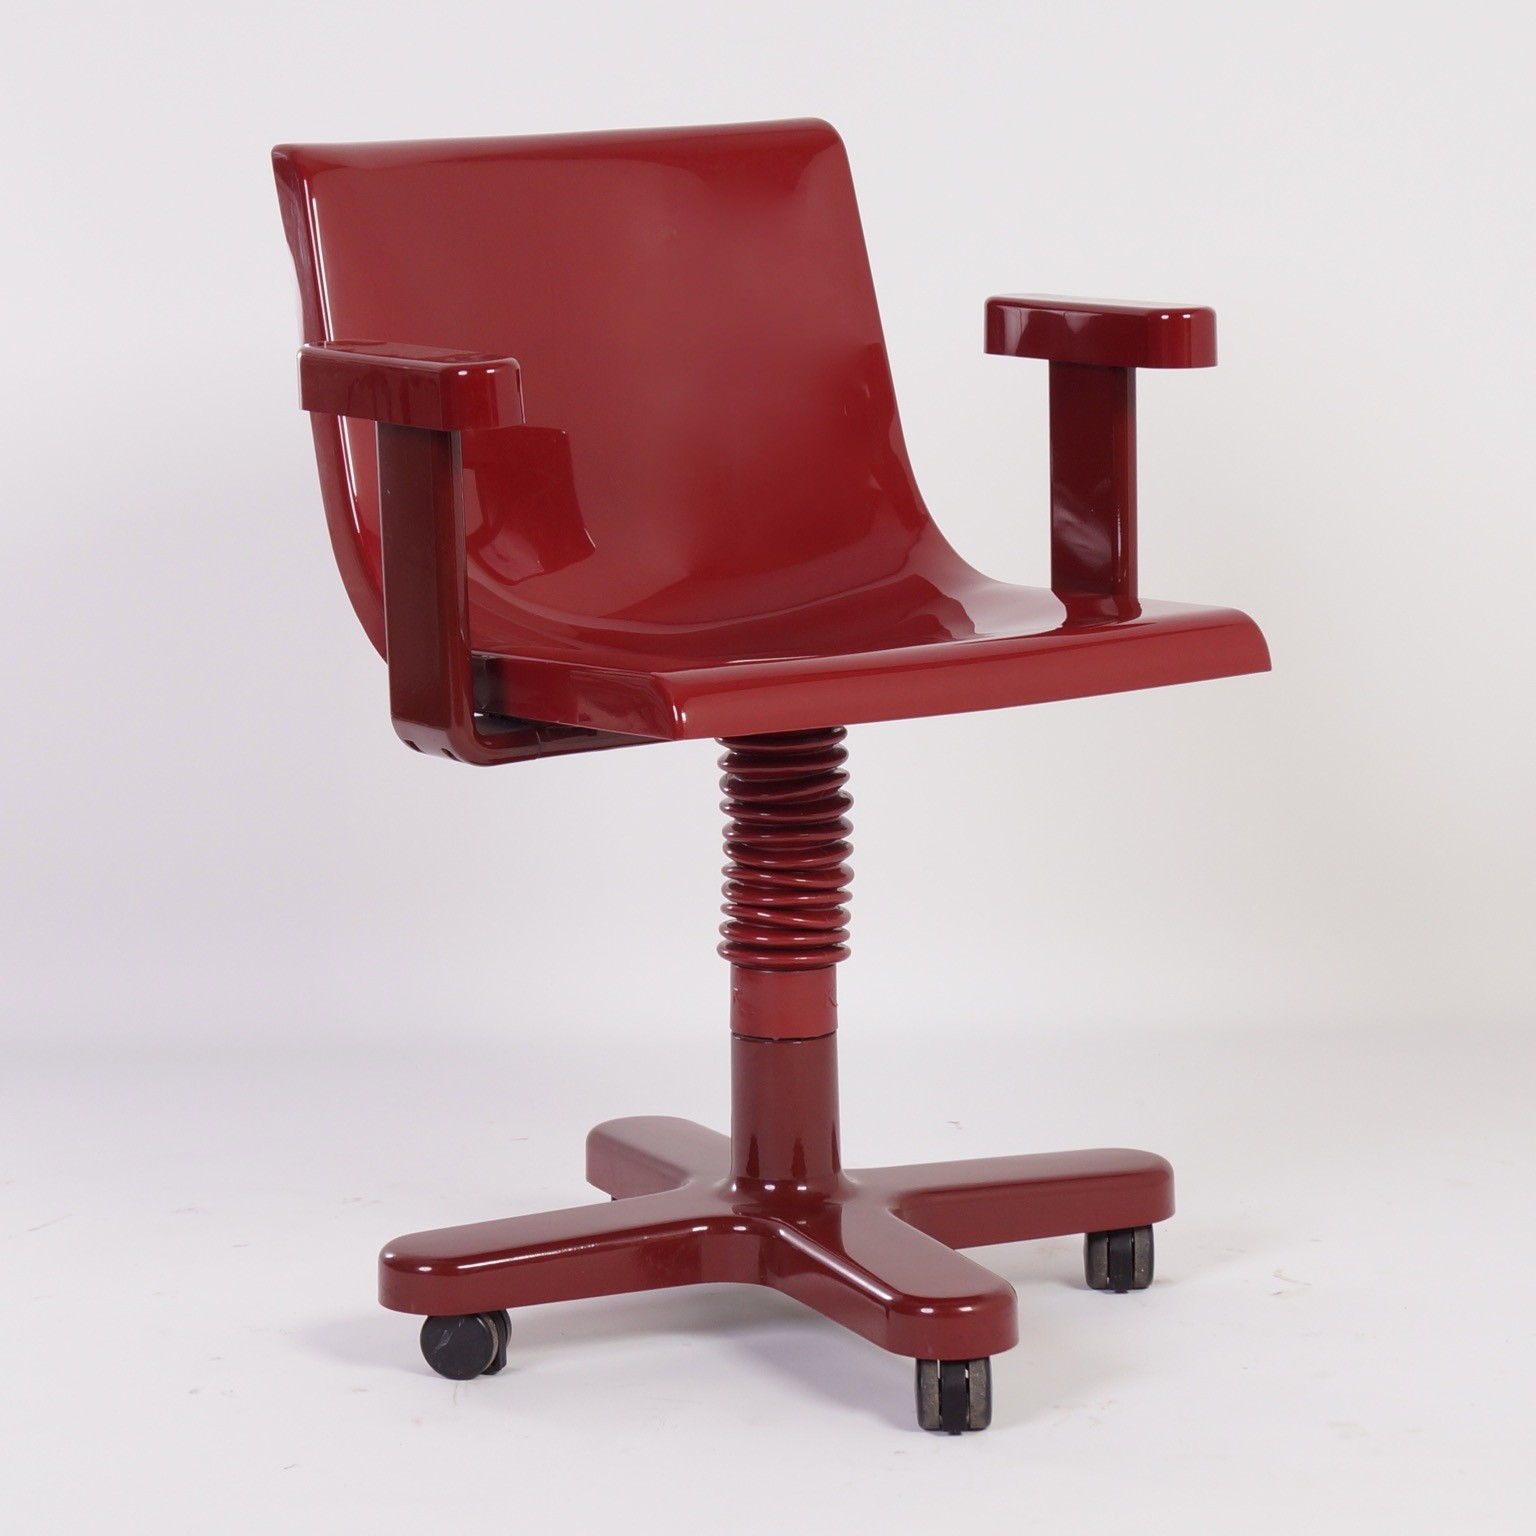 Ettore Sottsass Olivetti Synthesis Desk Chair 1970s